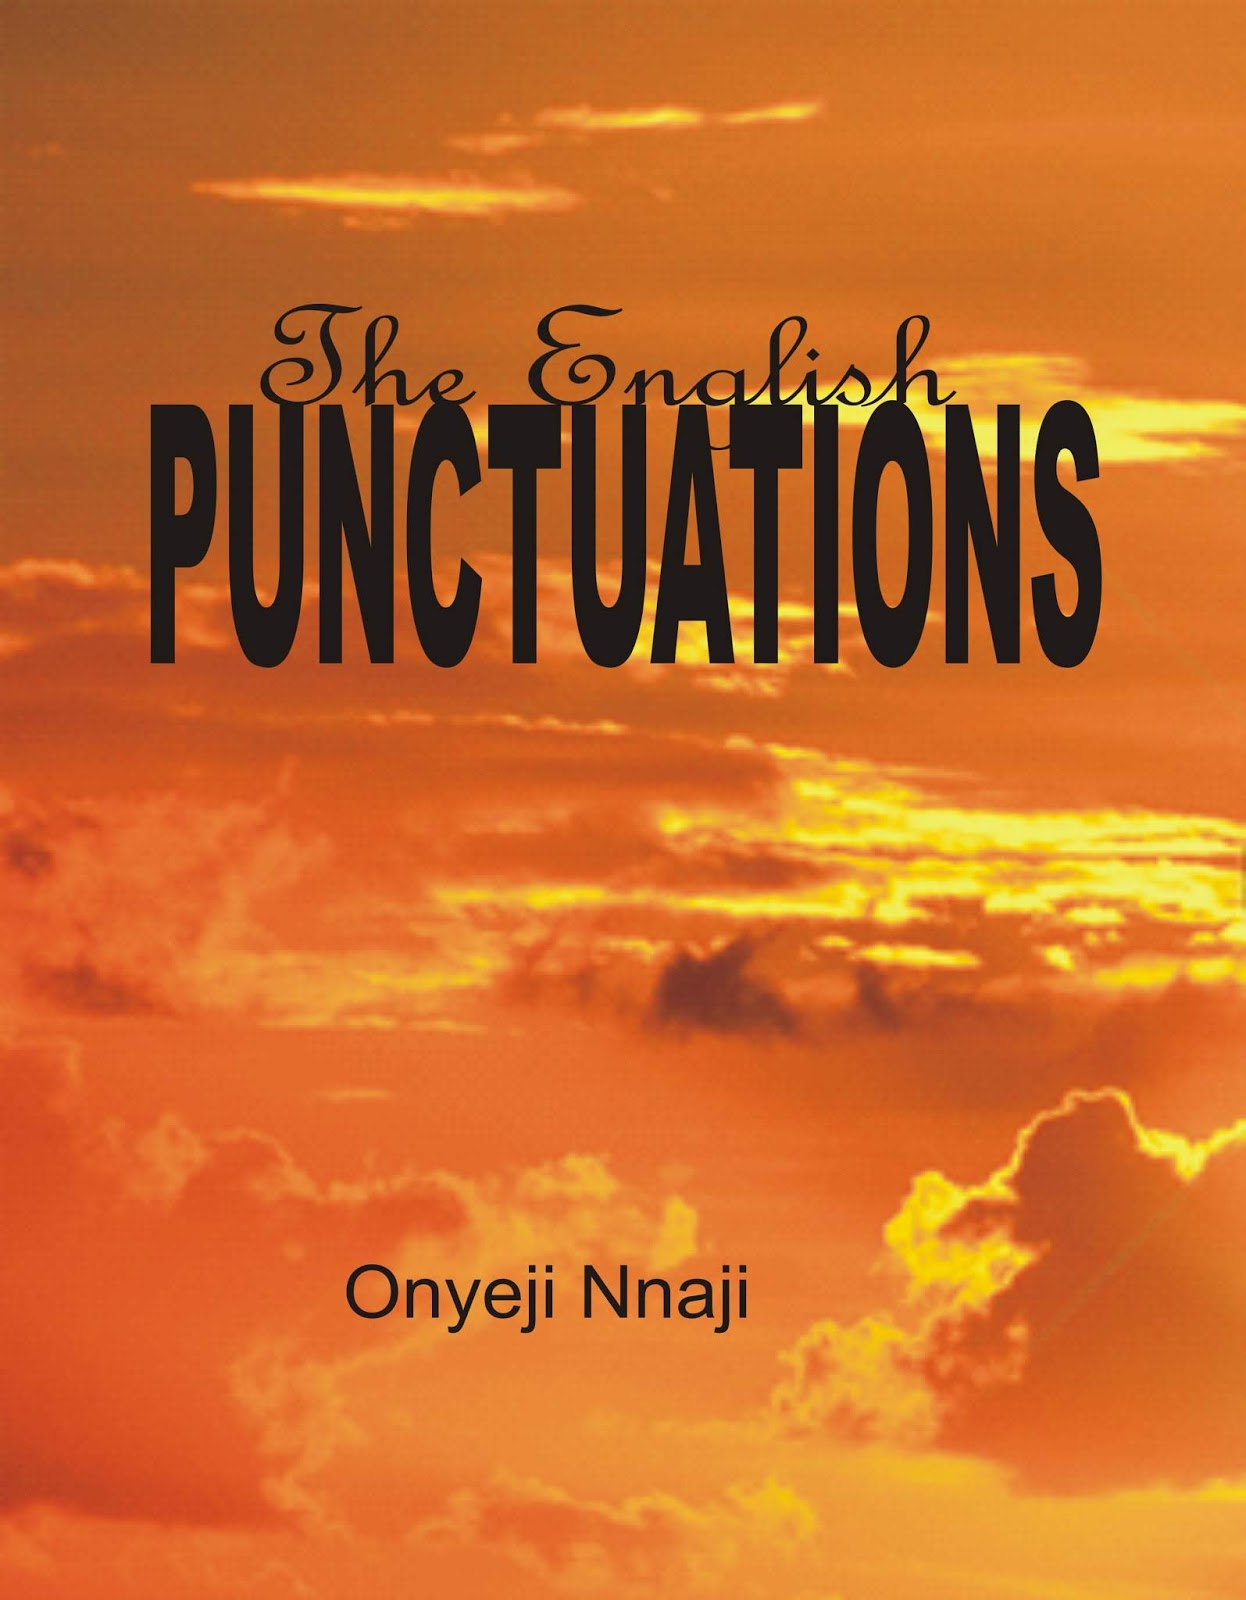 GRAMMAR AND PUNCTUATION EXERCISES EXCITE THE WRITING PALETTE